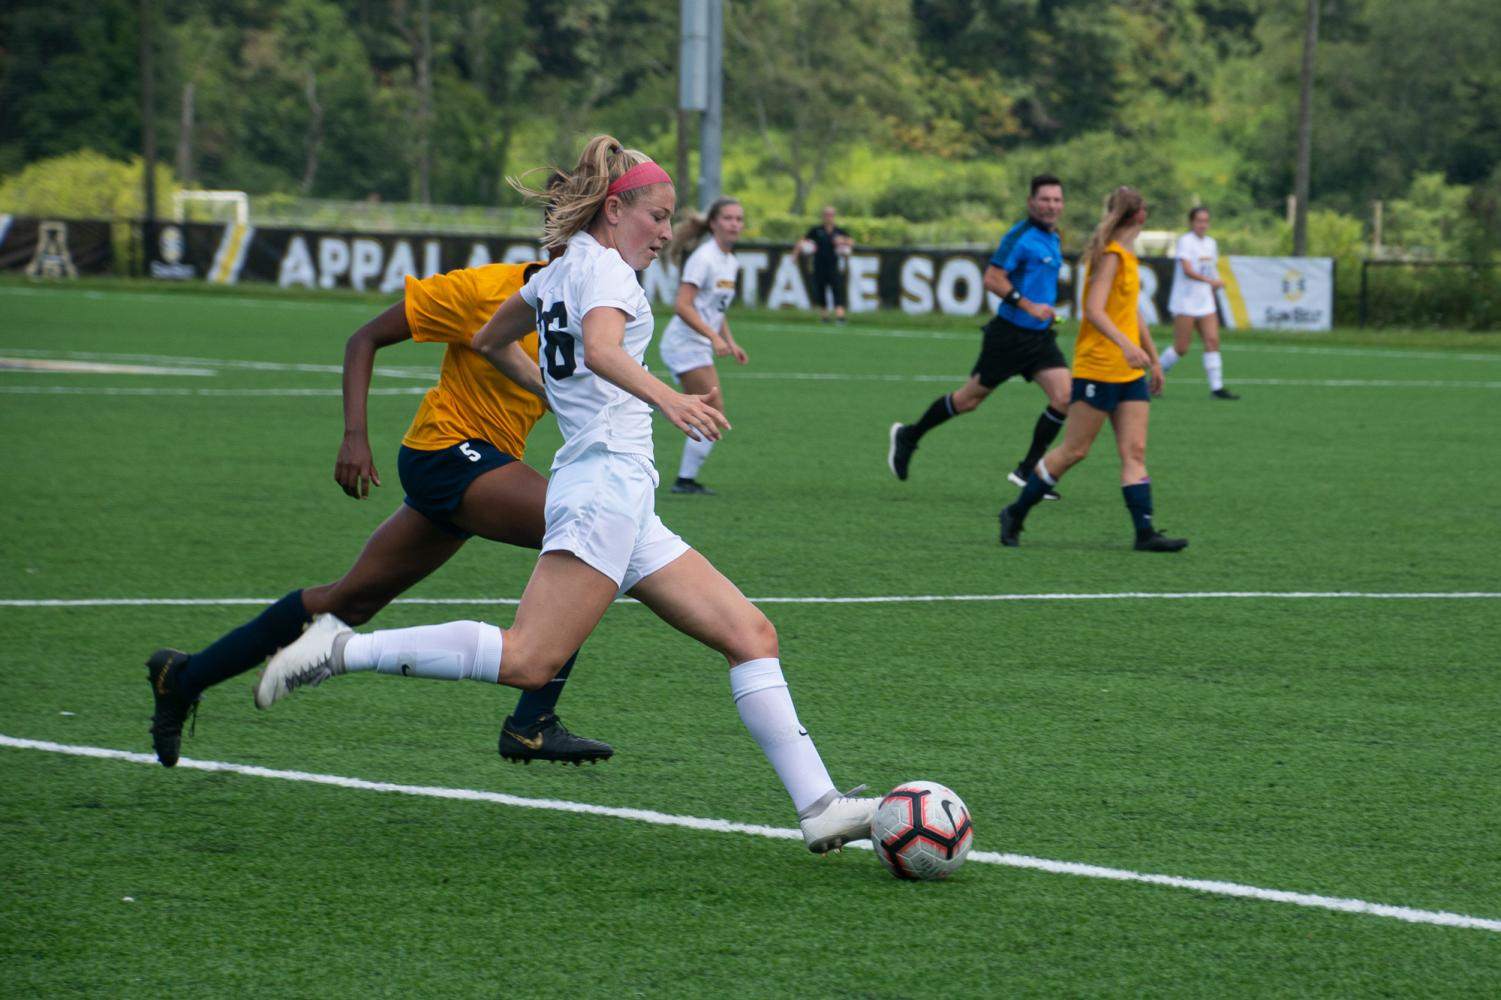 Freshman midfielder Hayley Boyles makes a play in the Mountaineers exhibition game against East Tennessee State on August 16. Photo by Lynette Files